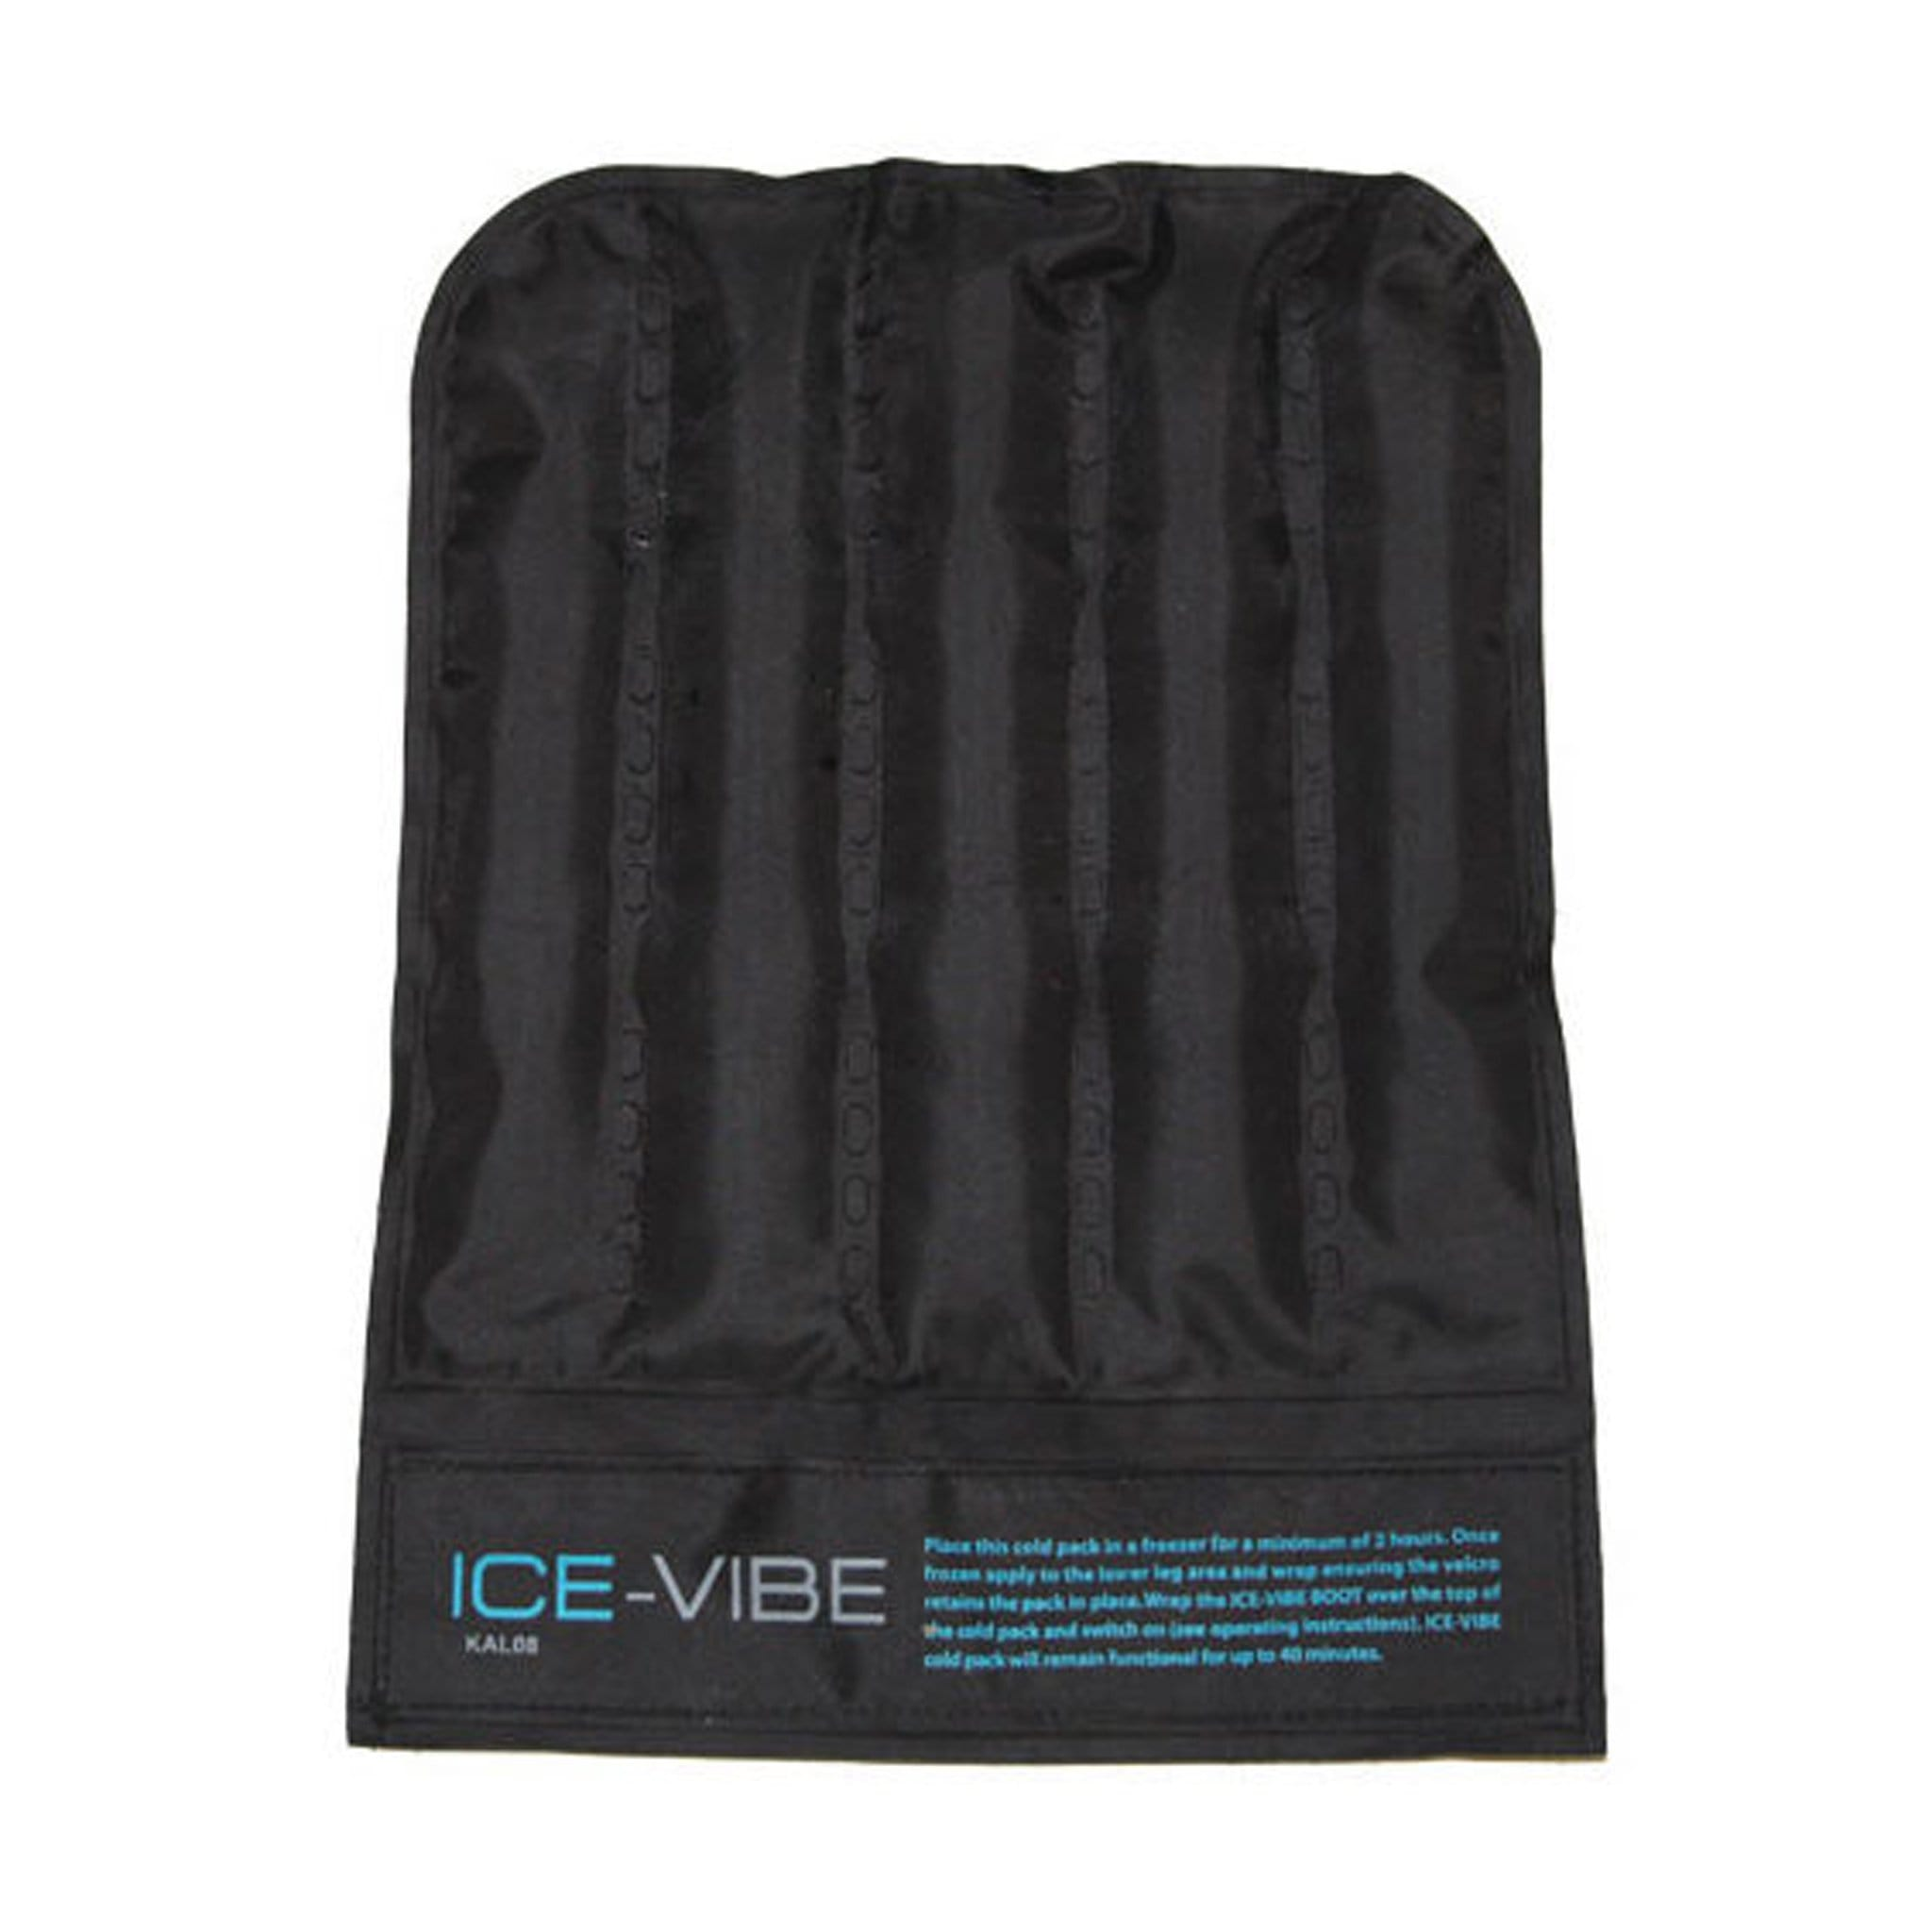 Horseware Ice-Vibe Knee Cold Packs DYHK33 Black Pair